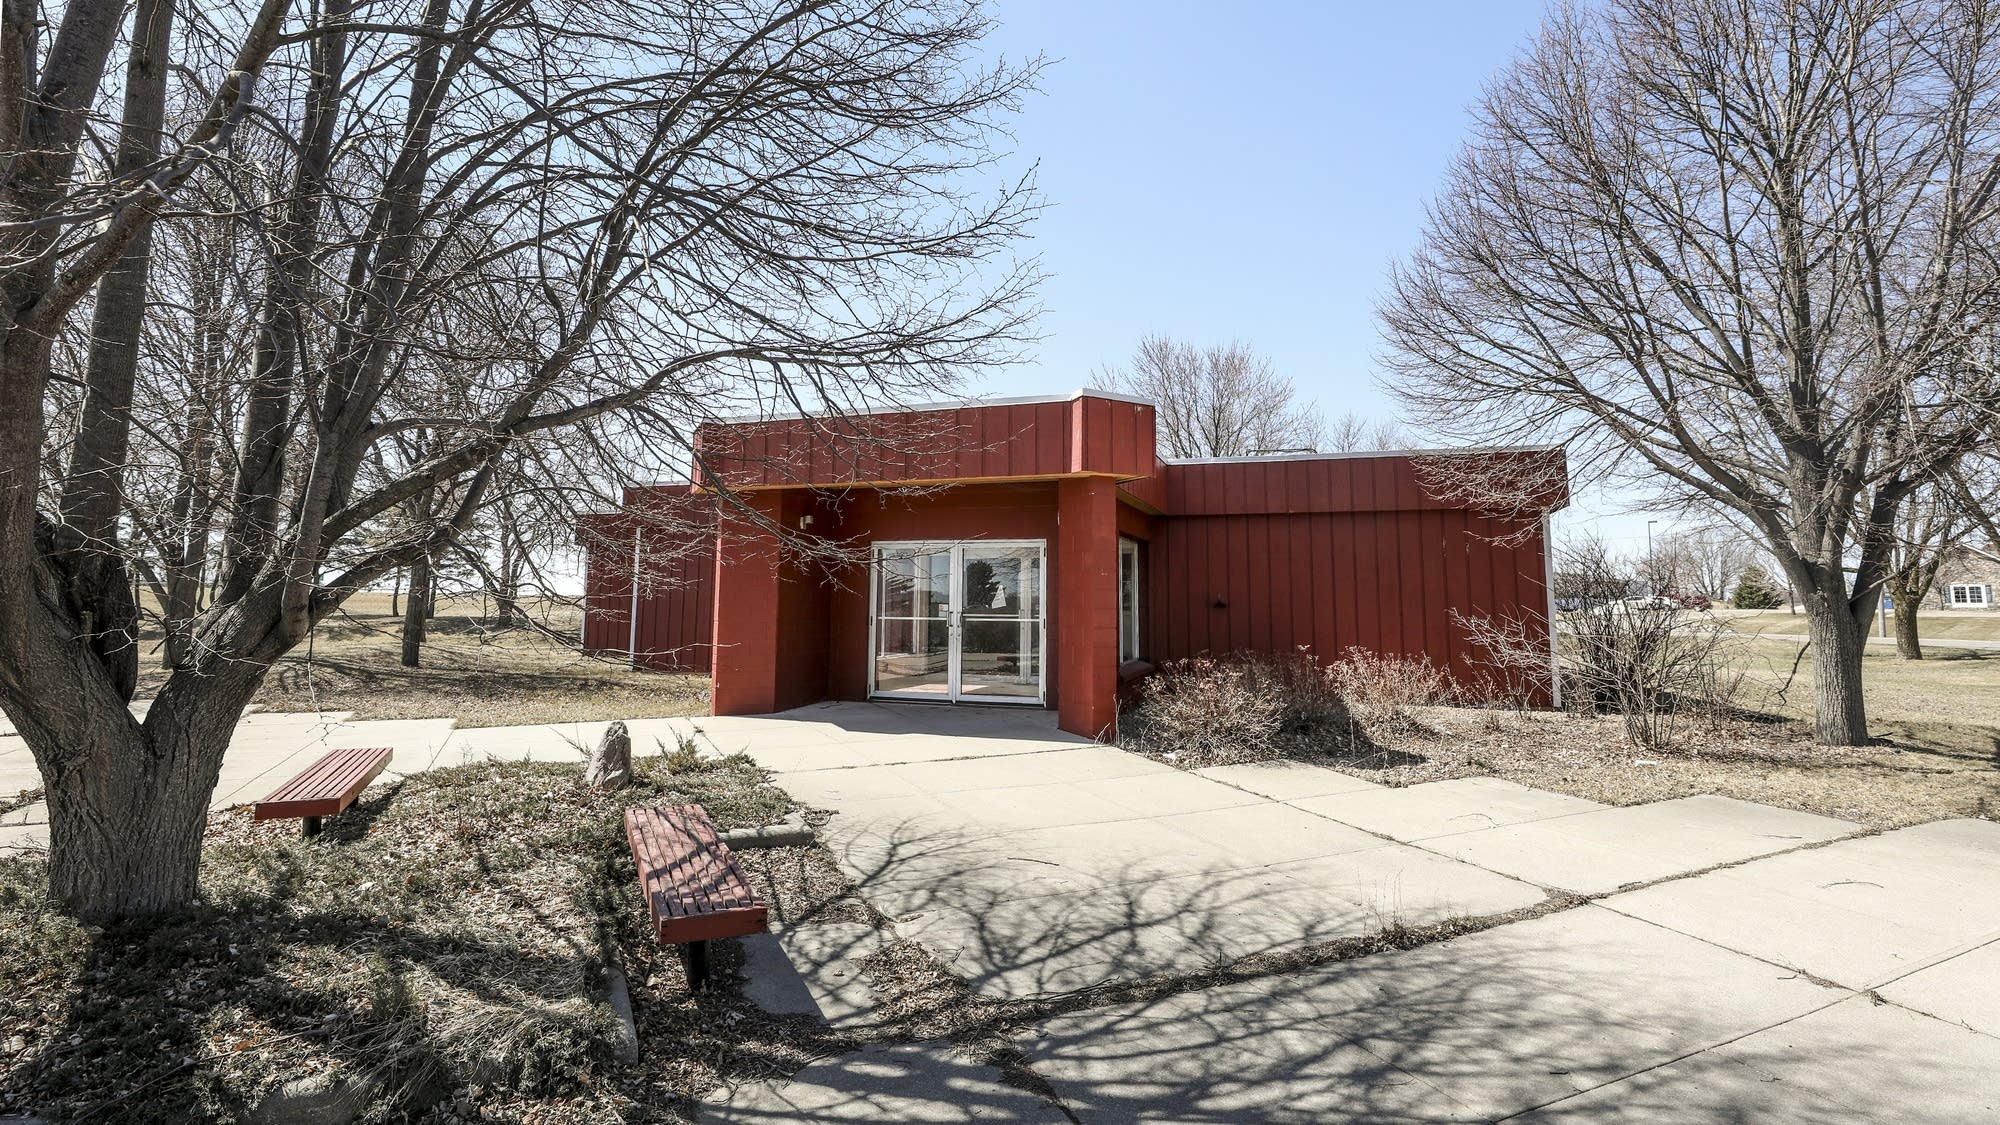 The Sinclair Lewis Interpretive Center will soon be torn down.